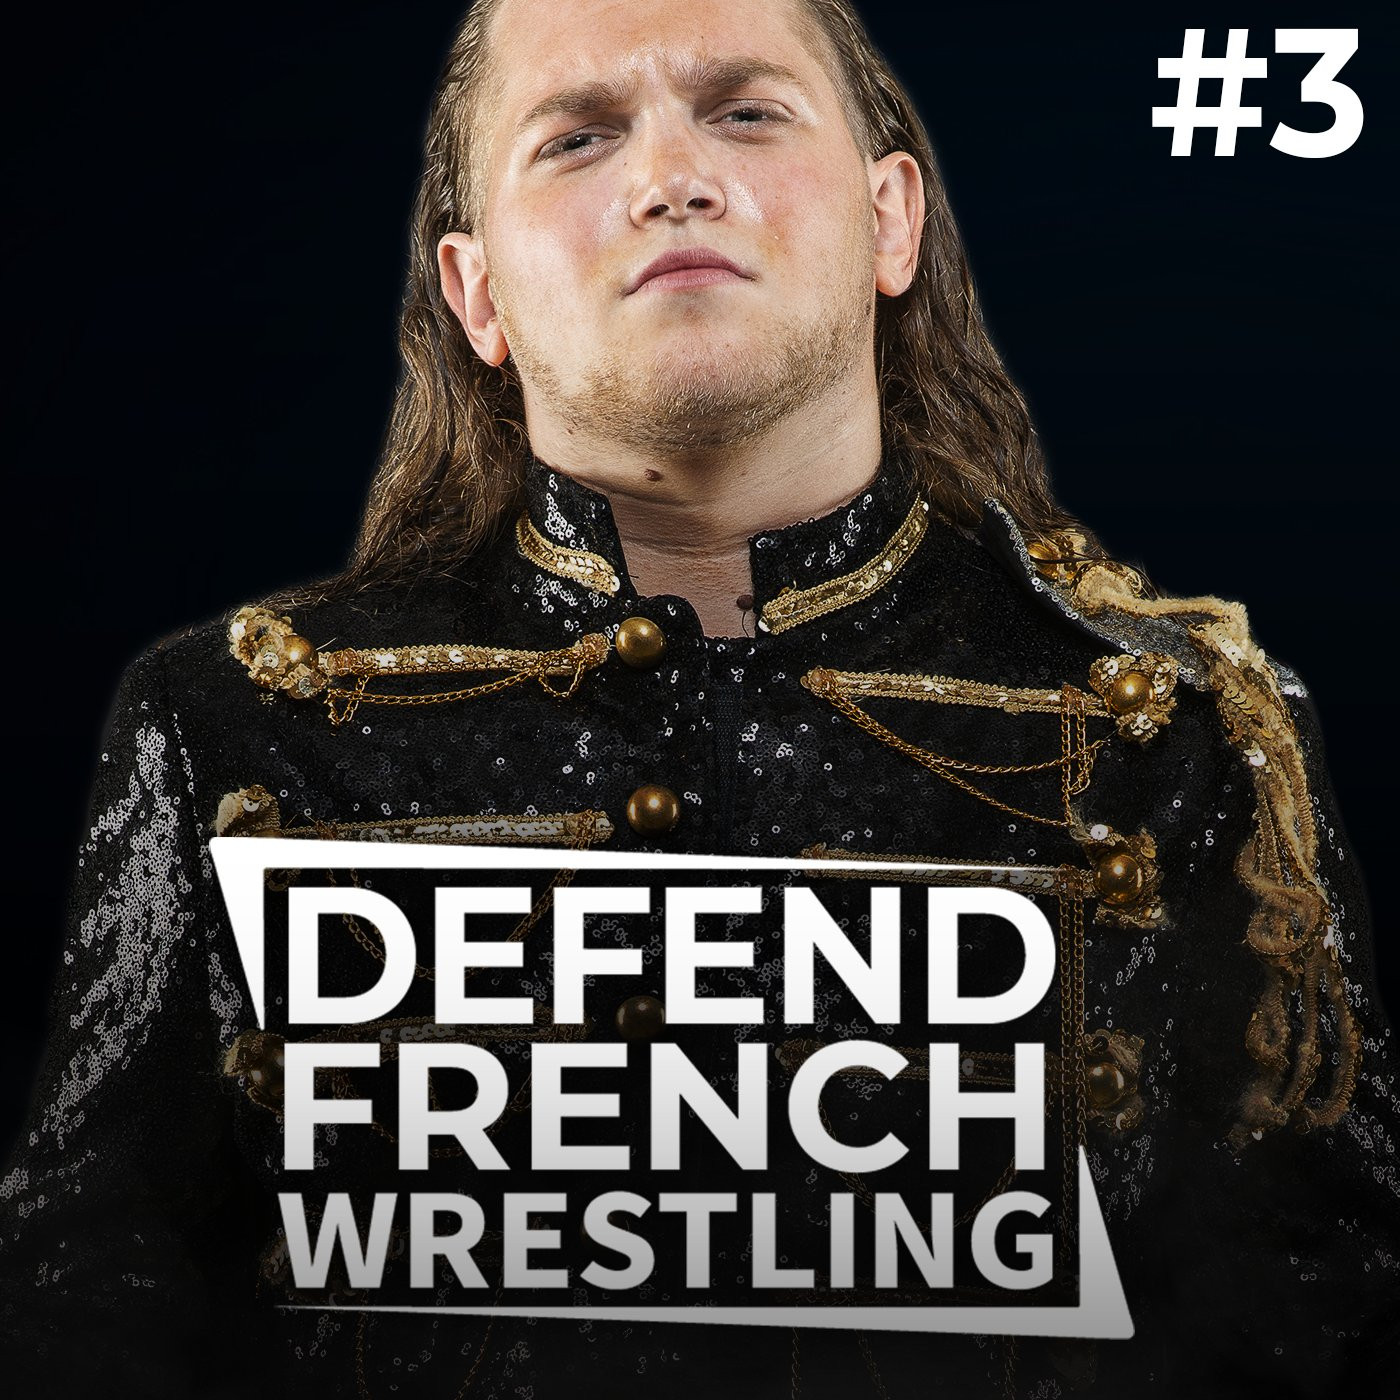 Defend French Wrestling #3 - WPE Quality Over Quantity 2020, Road to BodyZoi 3 & APC Résistance S2